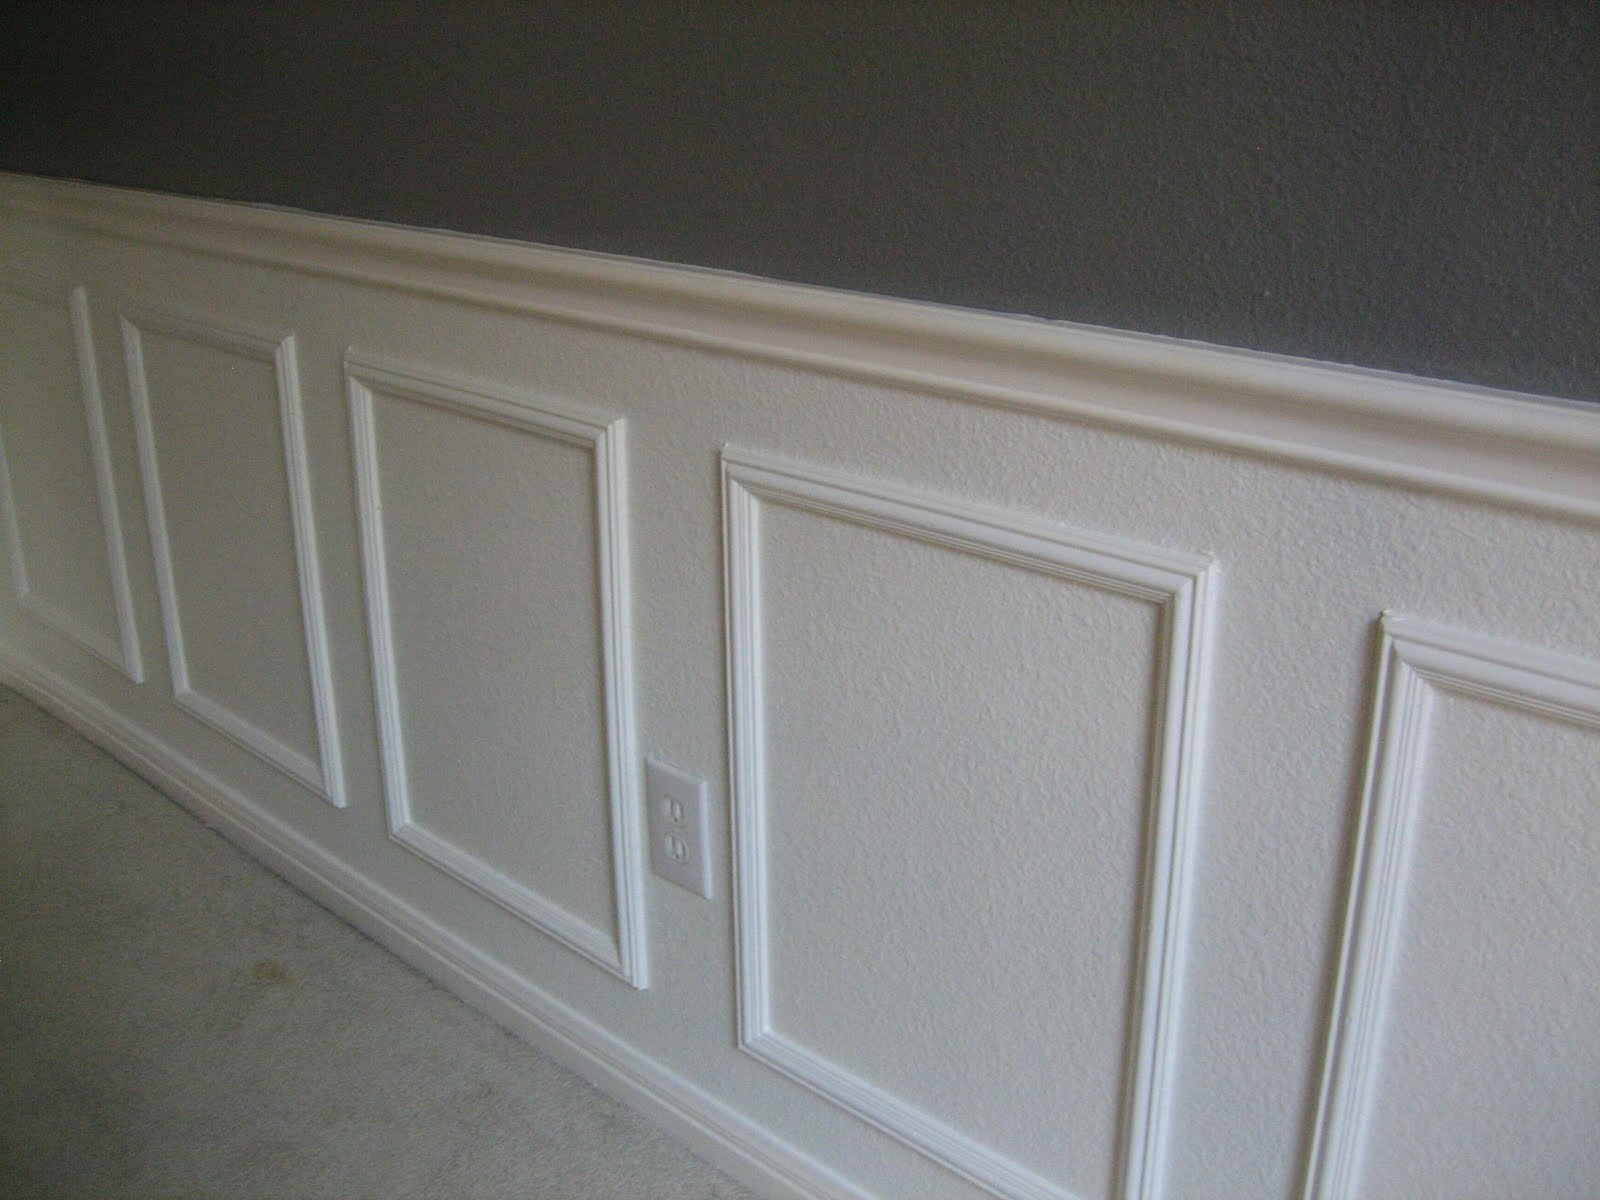 wainscoting success how to install wainscoting without power tools